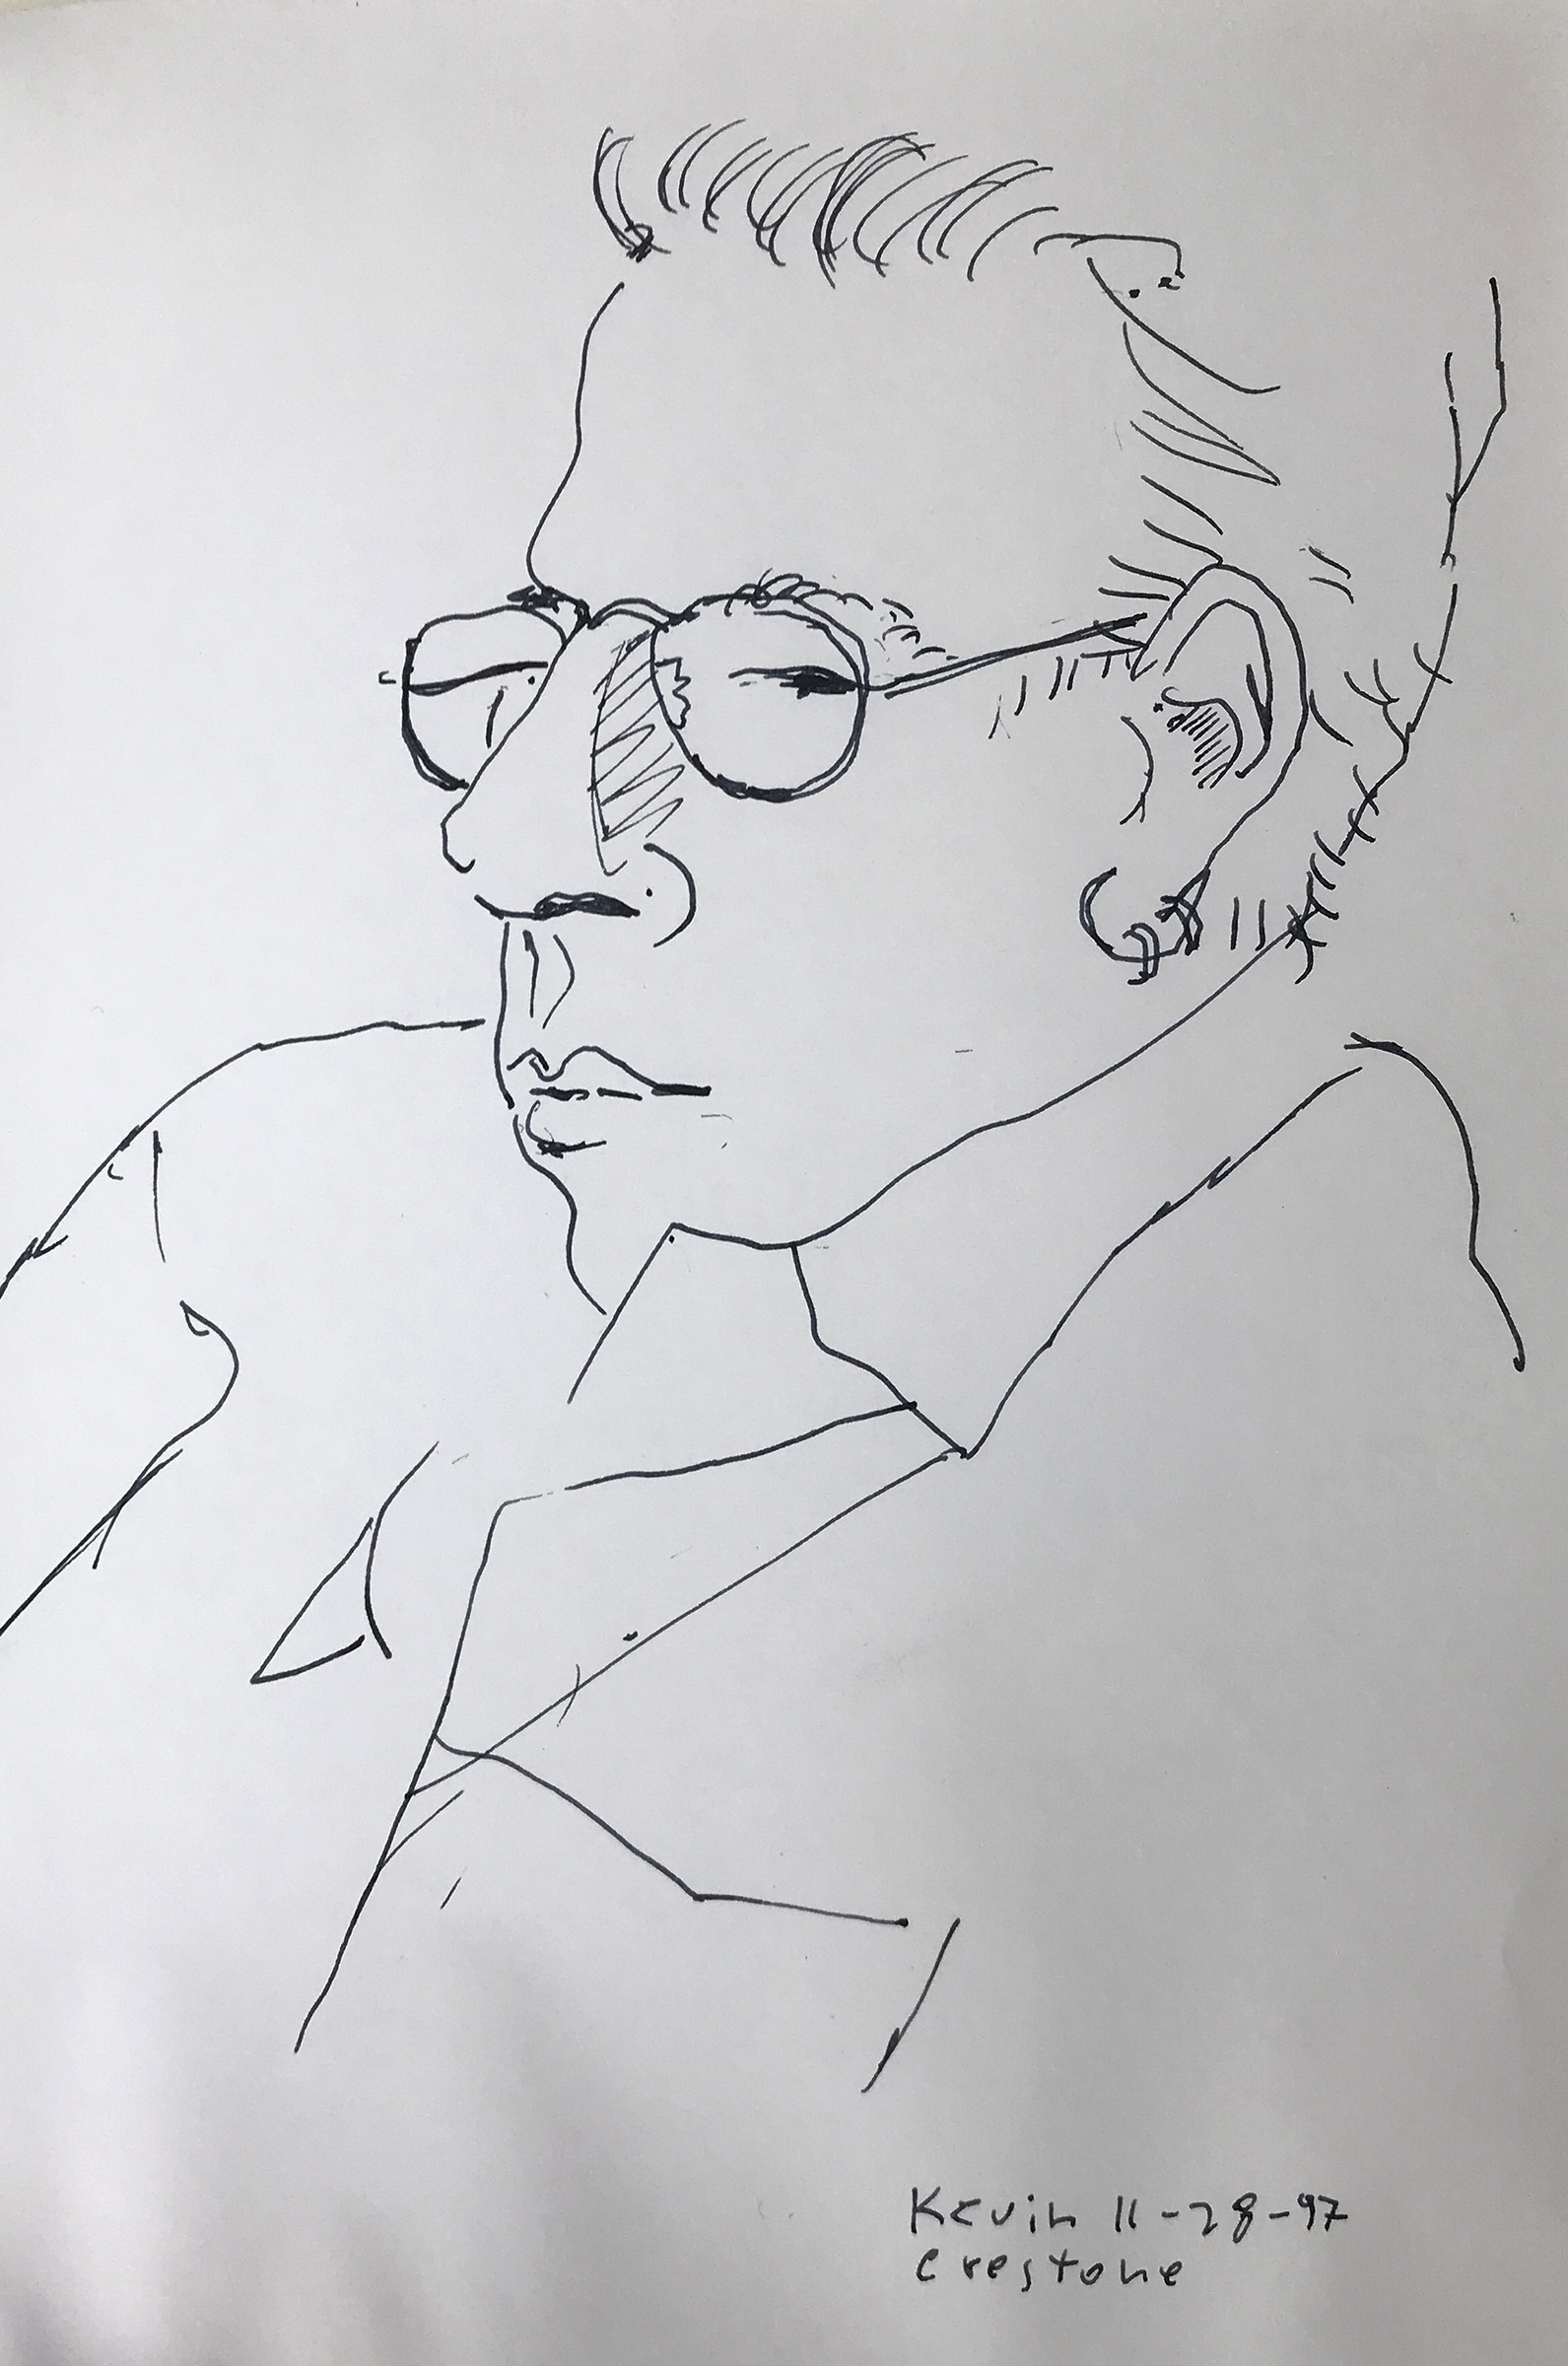 11/28/97 drawing  of Kevin in Crestone